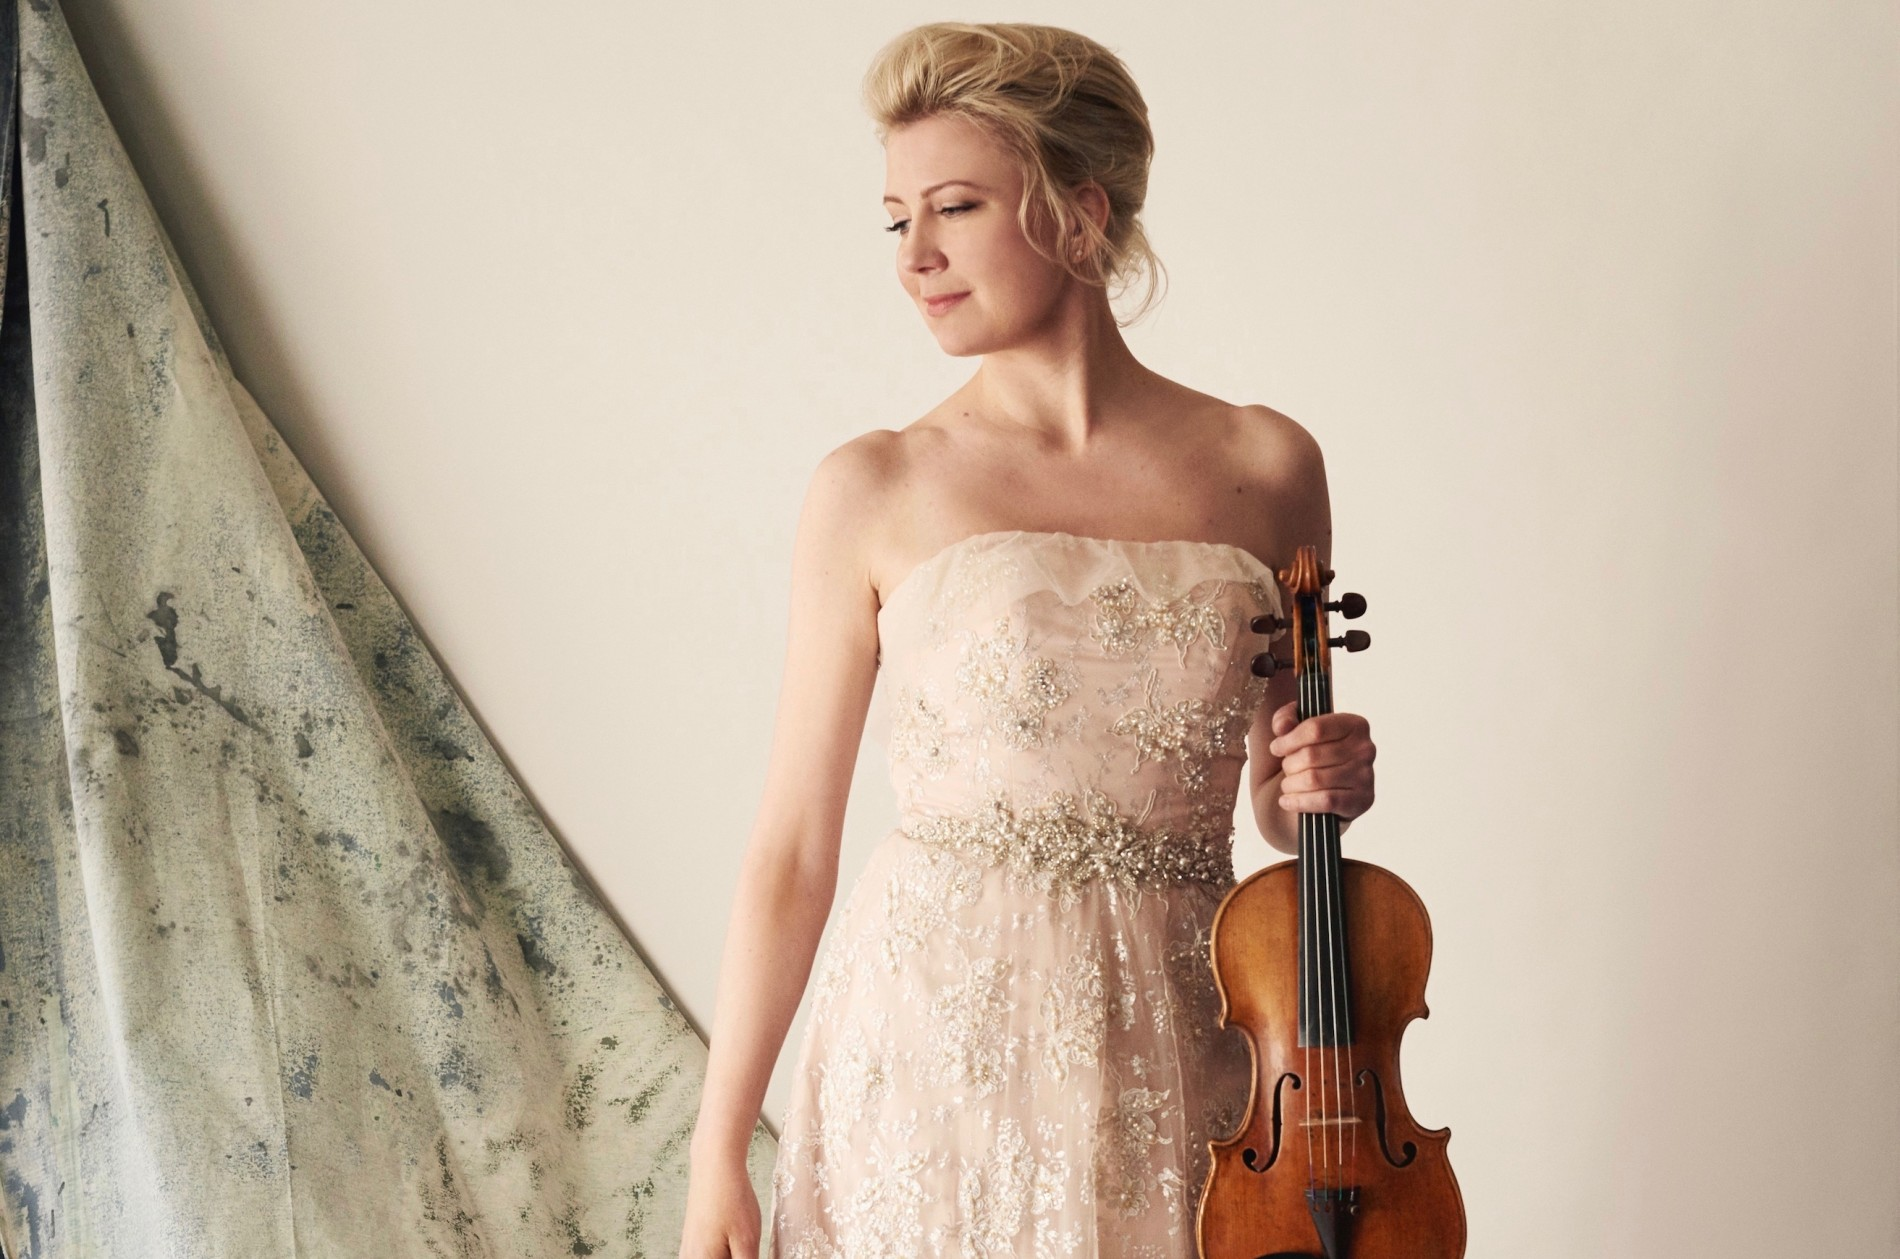 Elina Vähälä in performance attire holds her violin